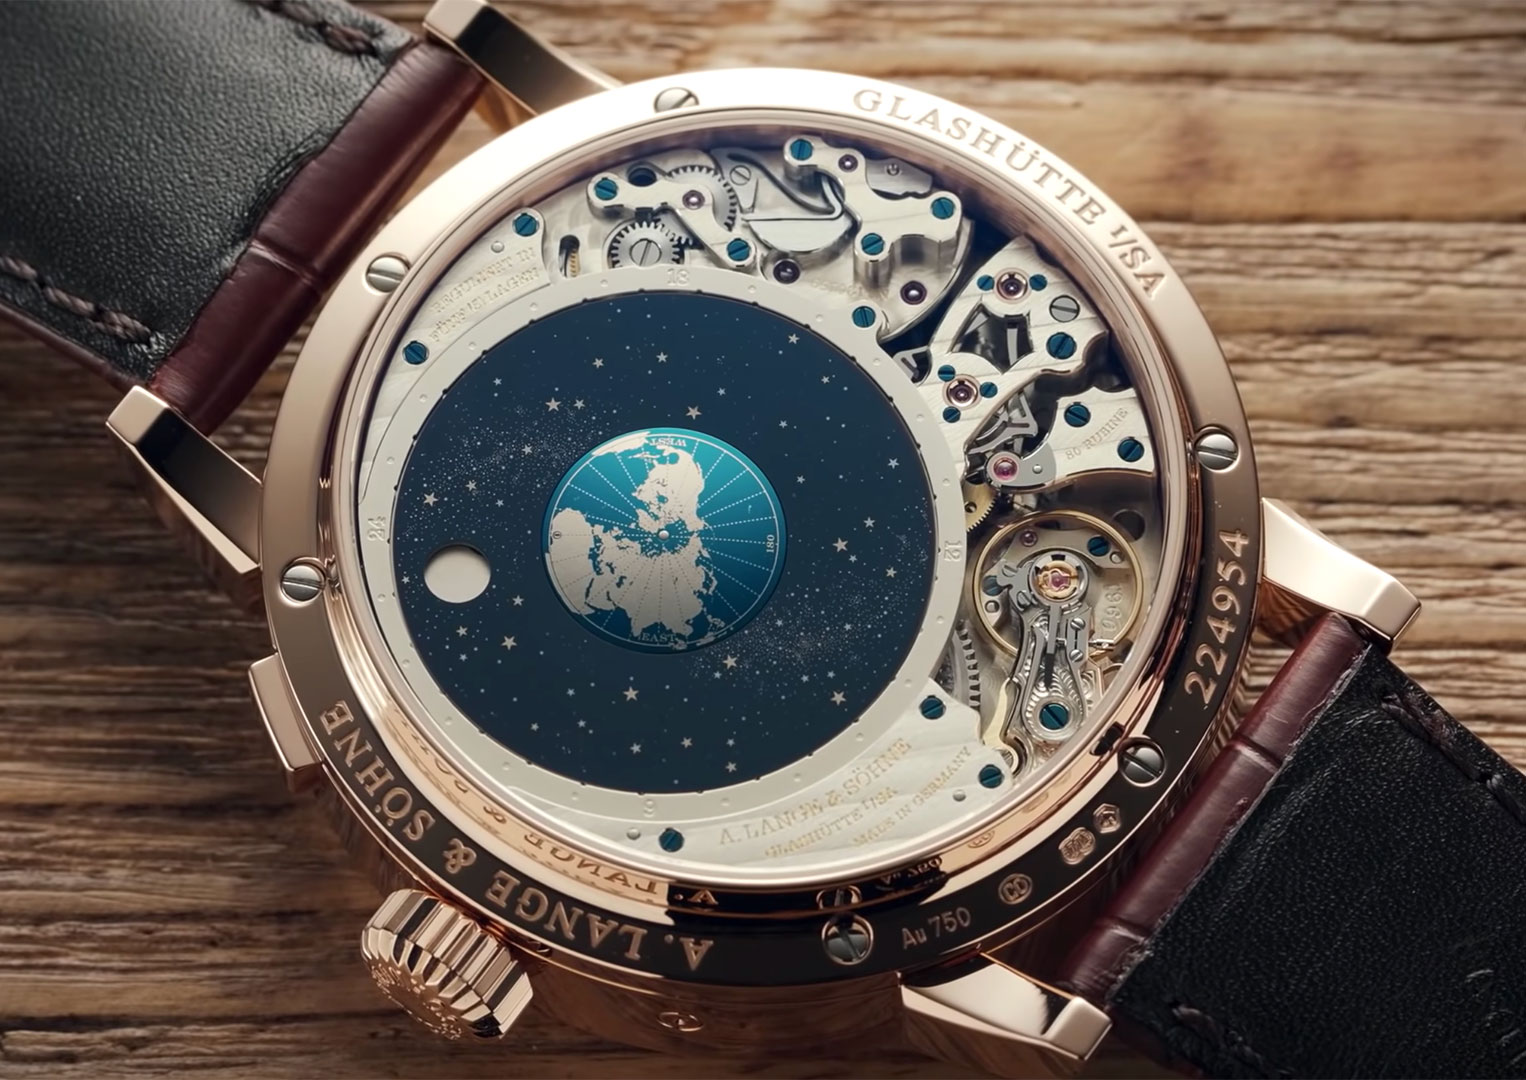 The A. Lange & Söhne Richard Lange Perpetual Calendar Terraluna was first introduced in 2014